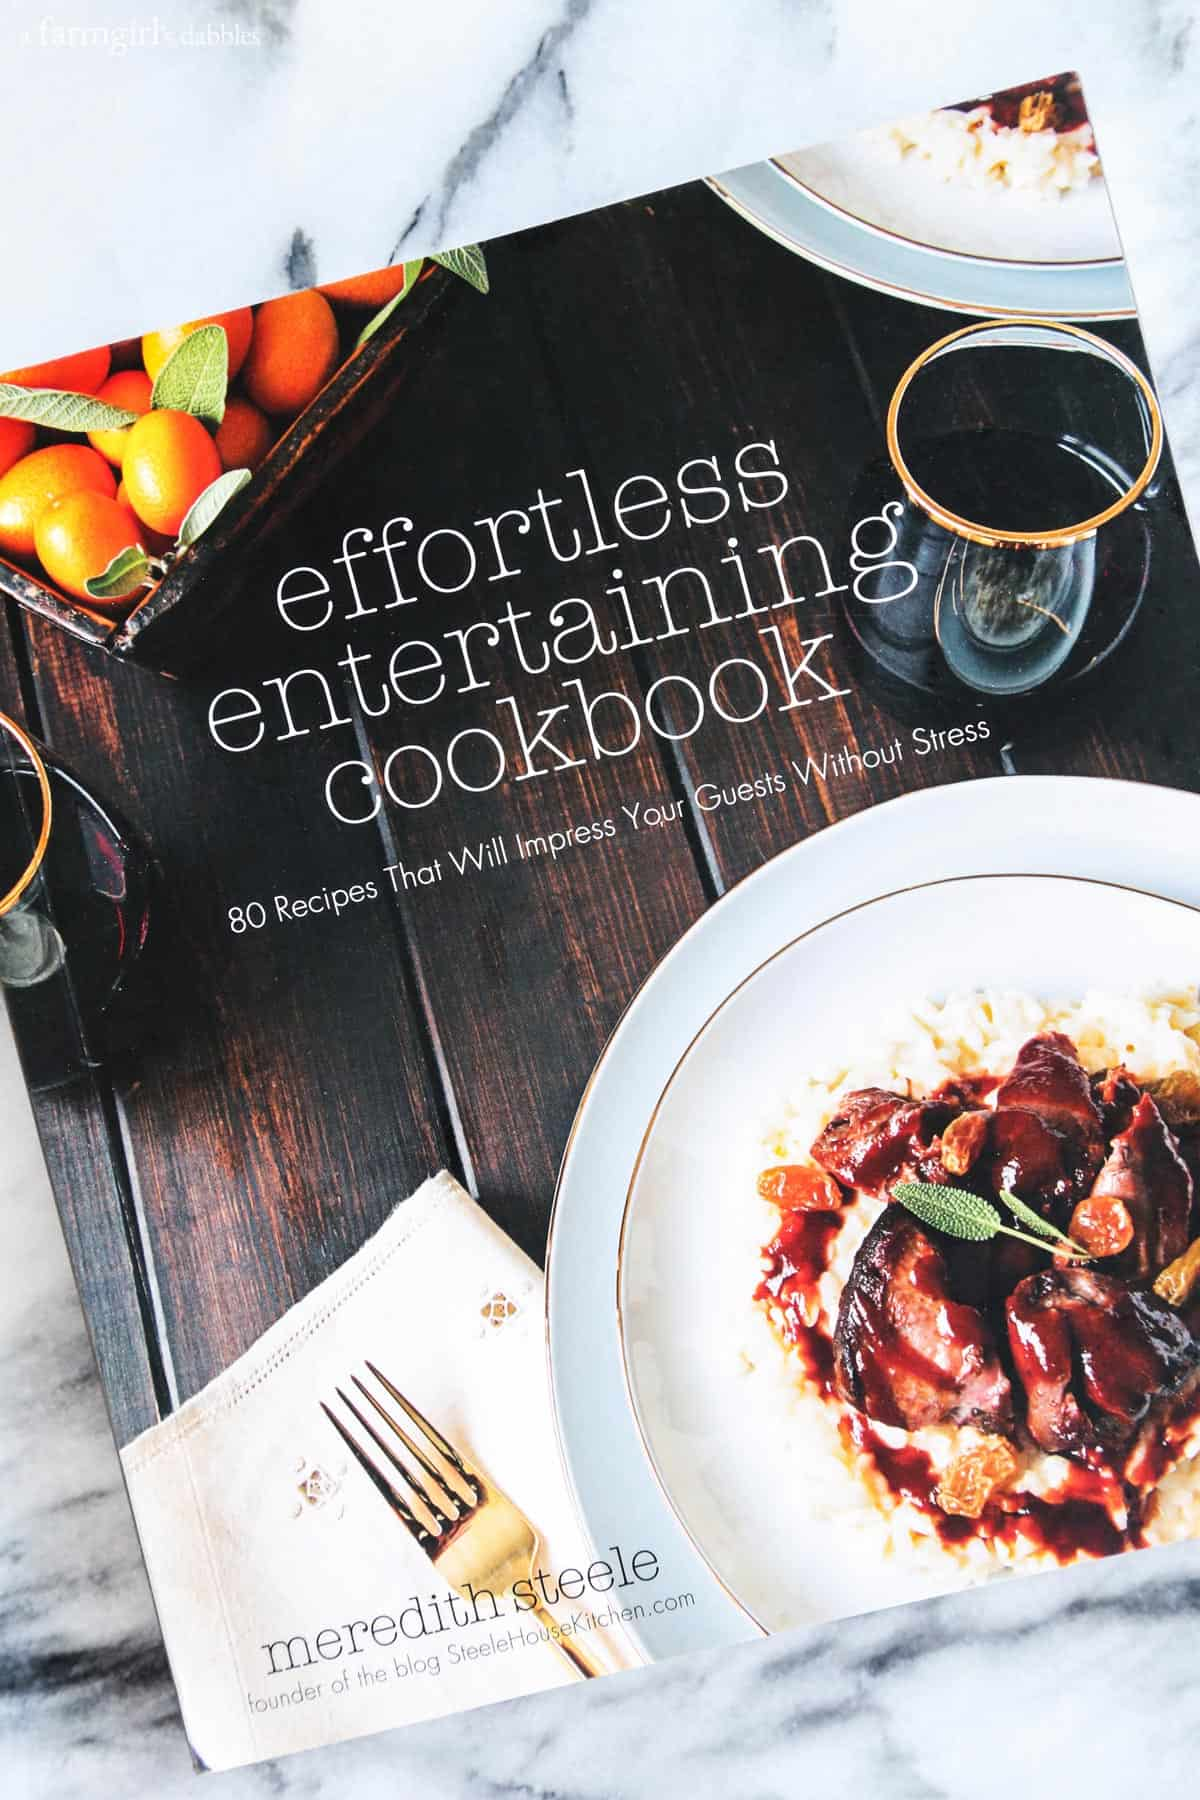 Effortless Entertaining Cookbook by Meredith Steele - from afarmgirlsdabbles.com